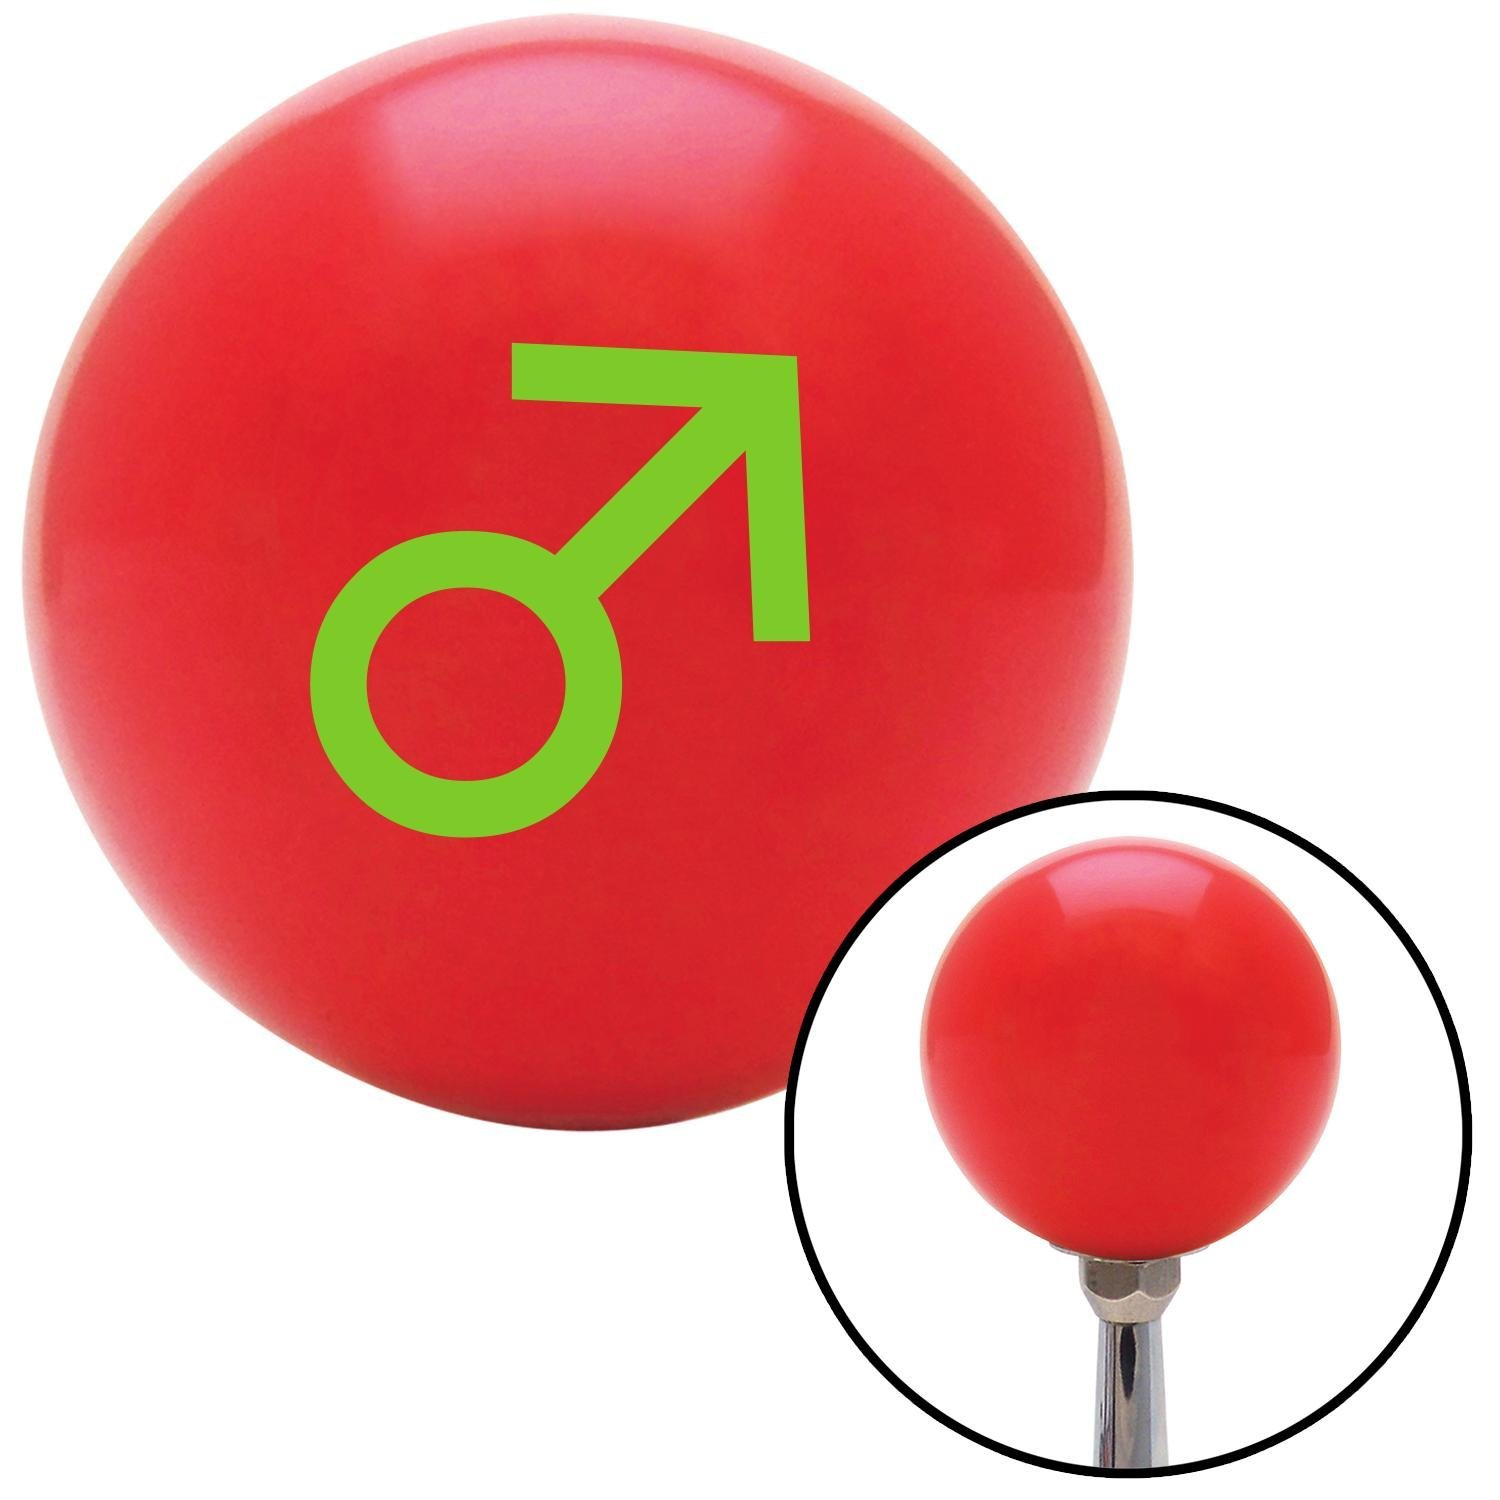 American Shifter 101789 Red Shift Knob with M16 x 1.5 Insert Green Male